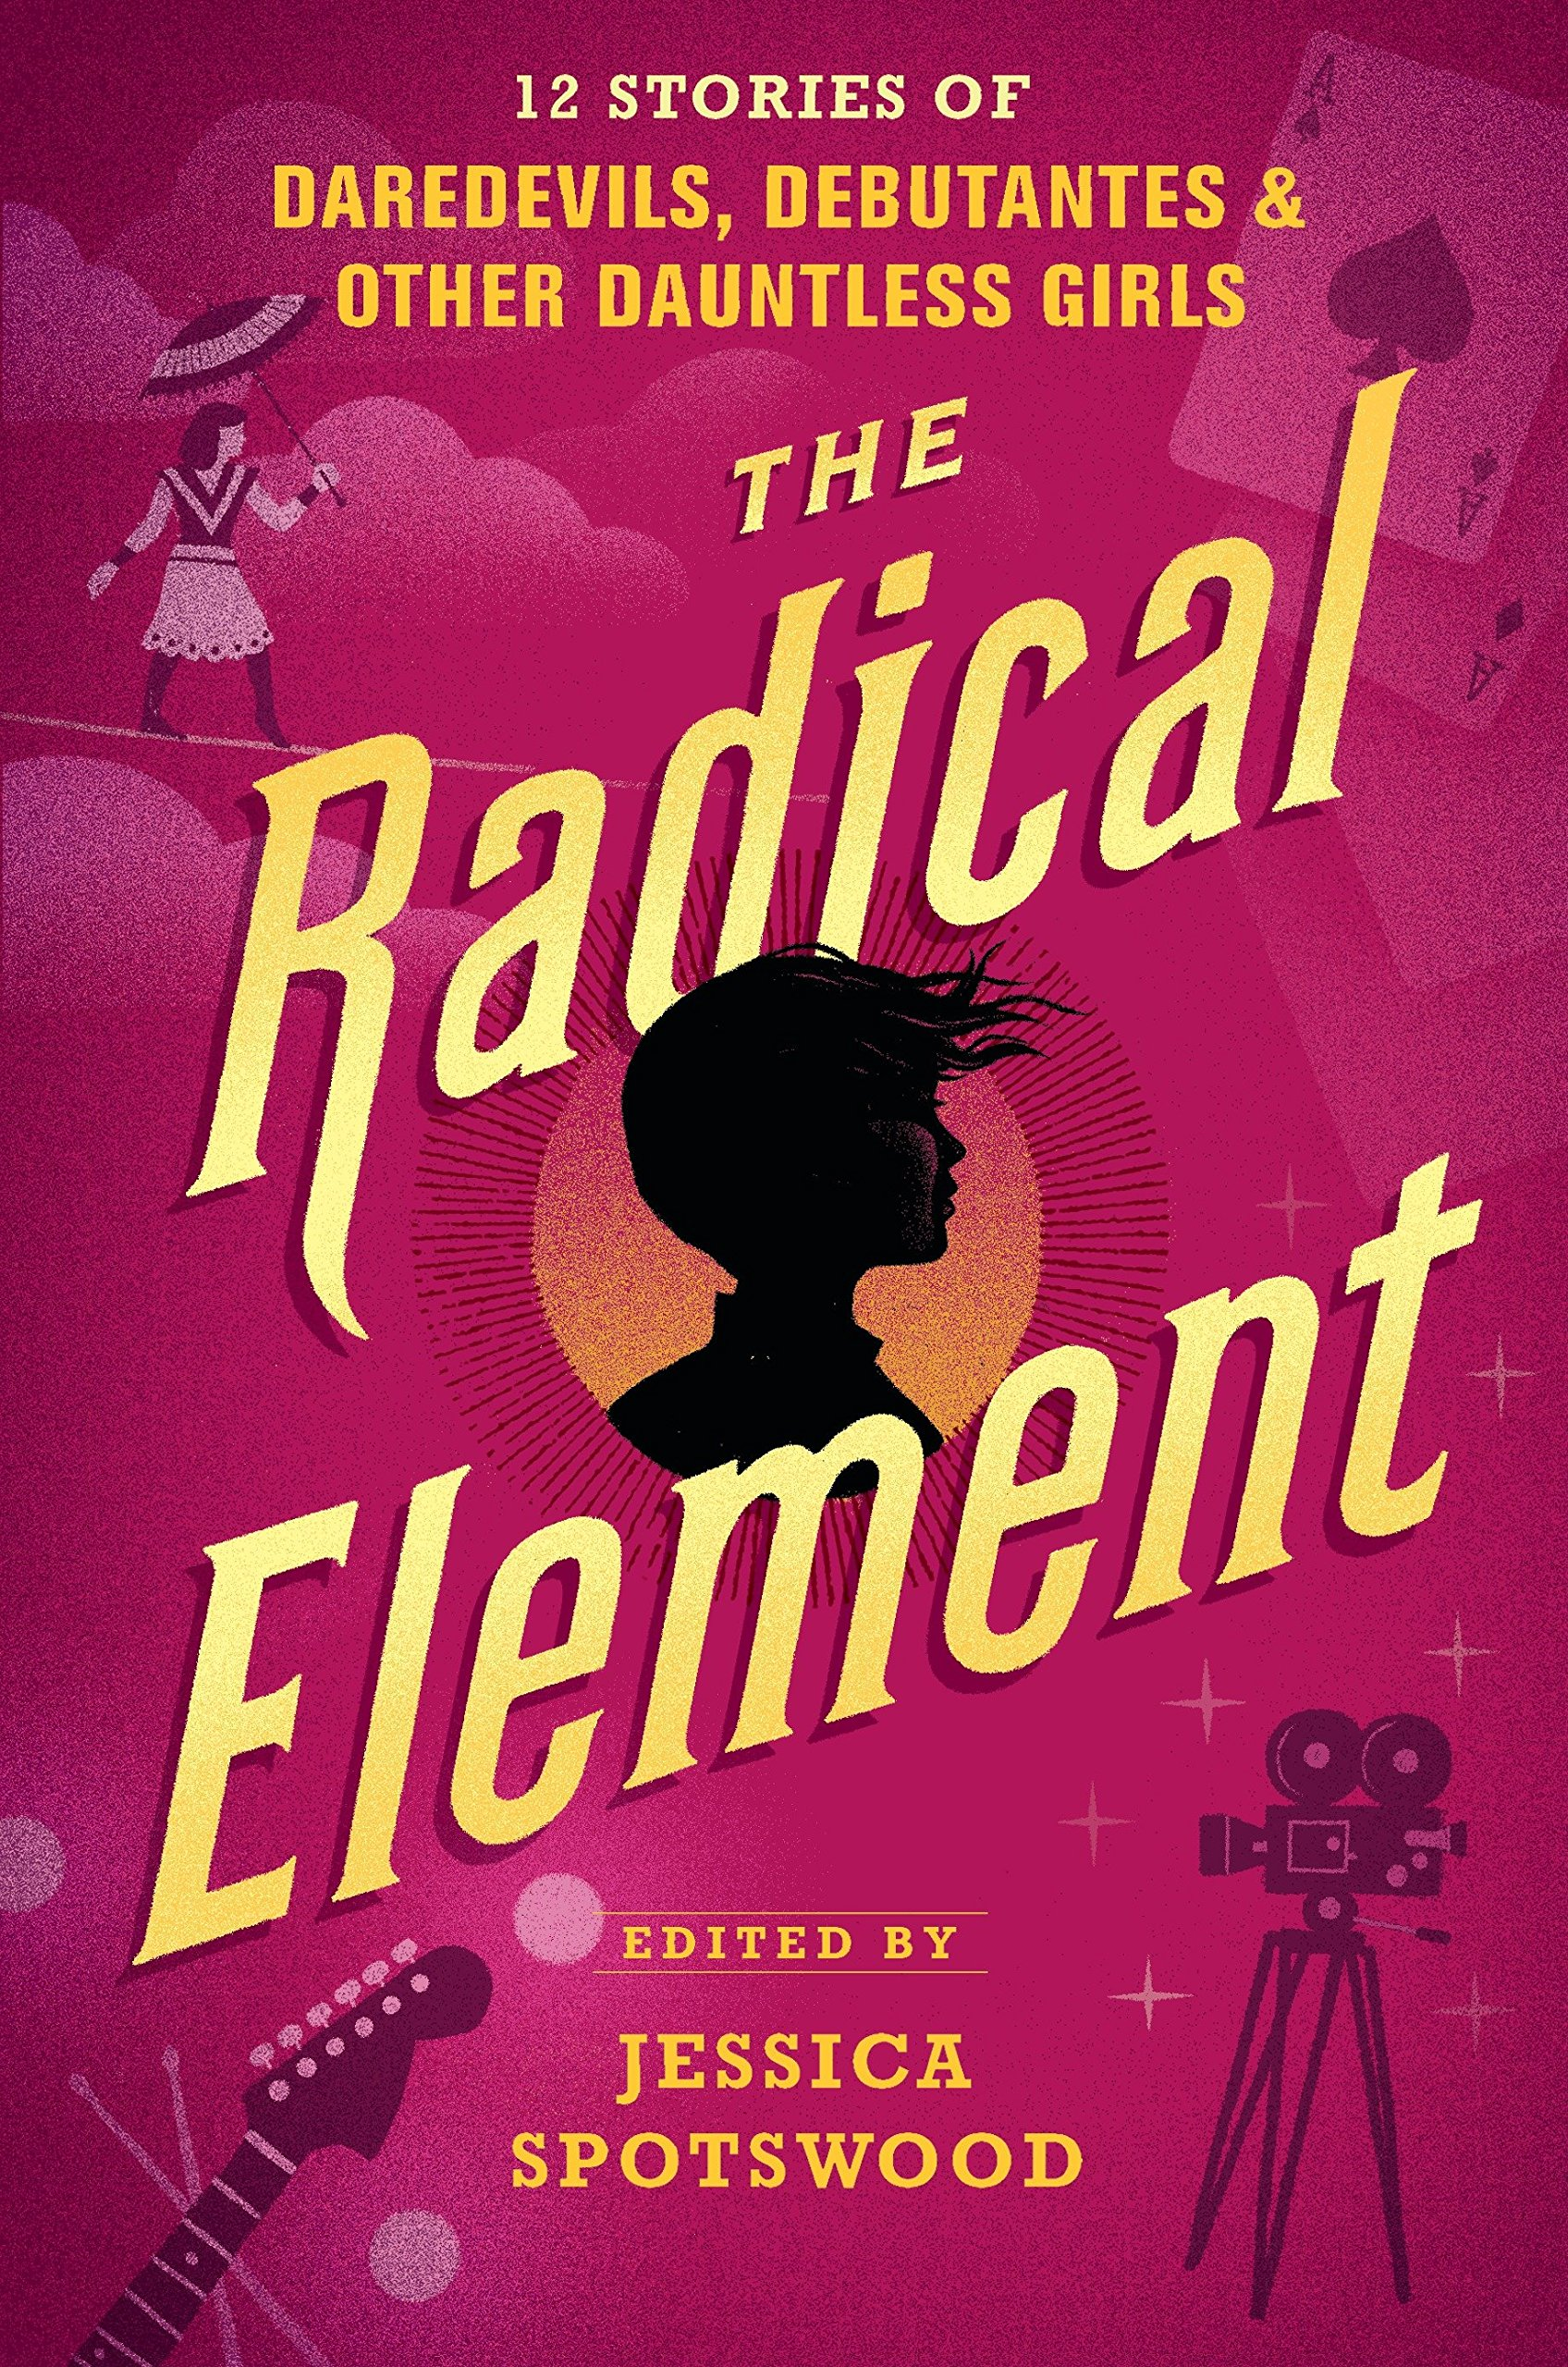 Amazon.com: The Radical Element: 12 Stories of Daredevils, Debutantes & Other  Dauntless Girls (9780763694258): Jessica Spotswood: Books